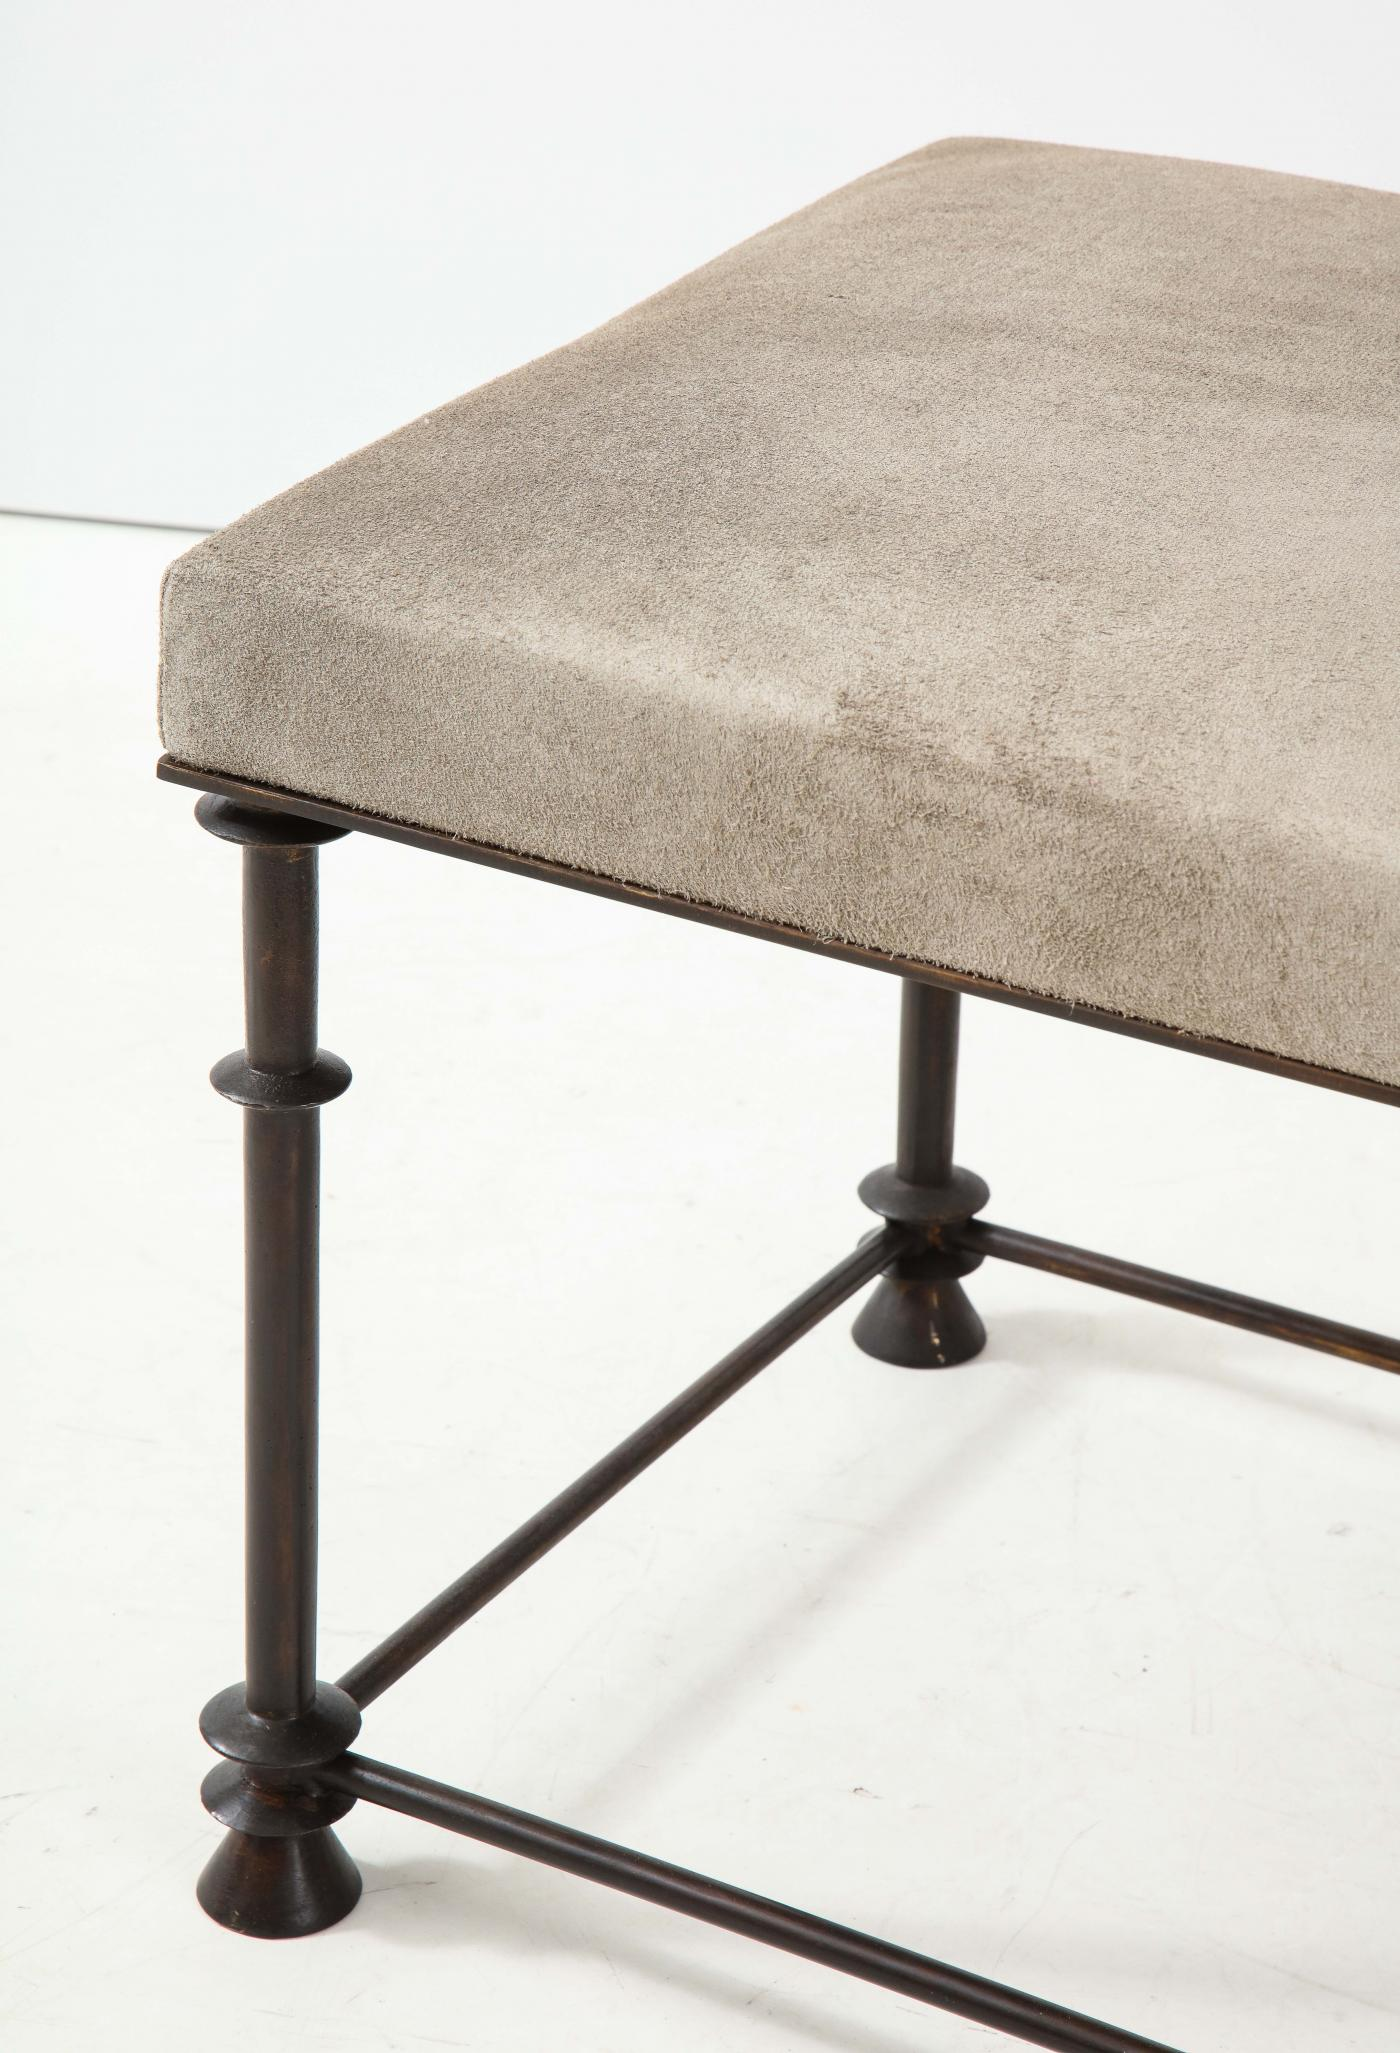 An elegant bronze stool covered with